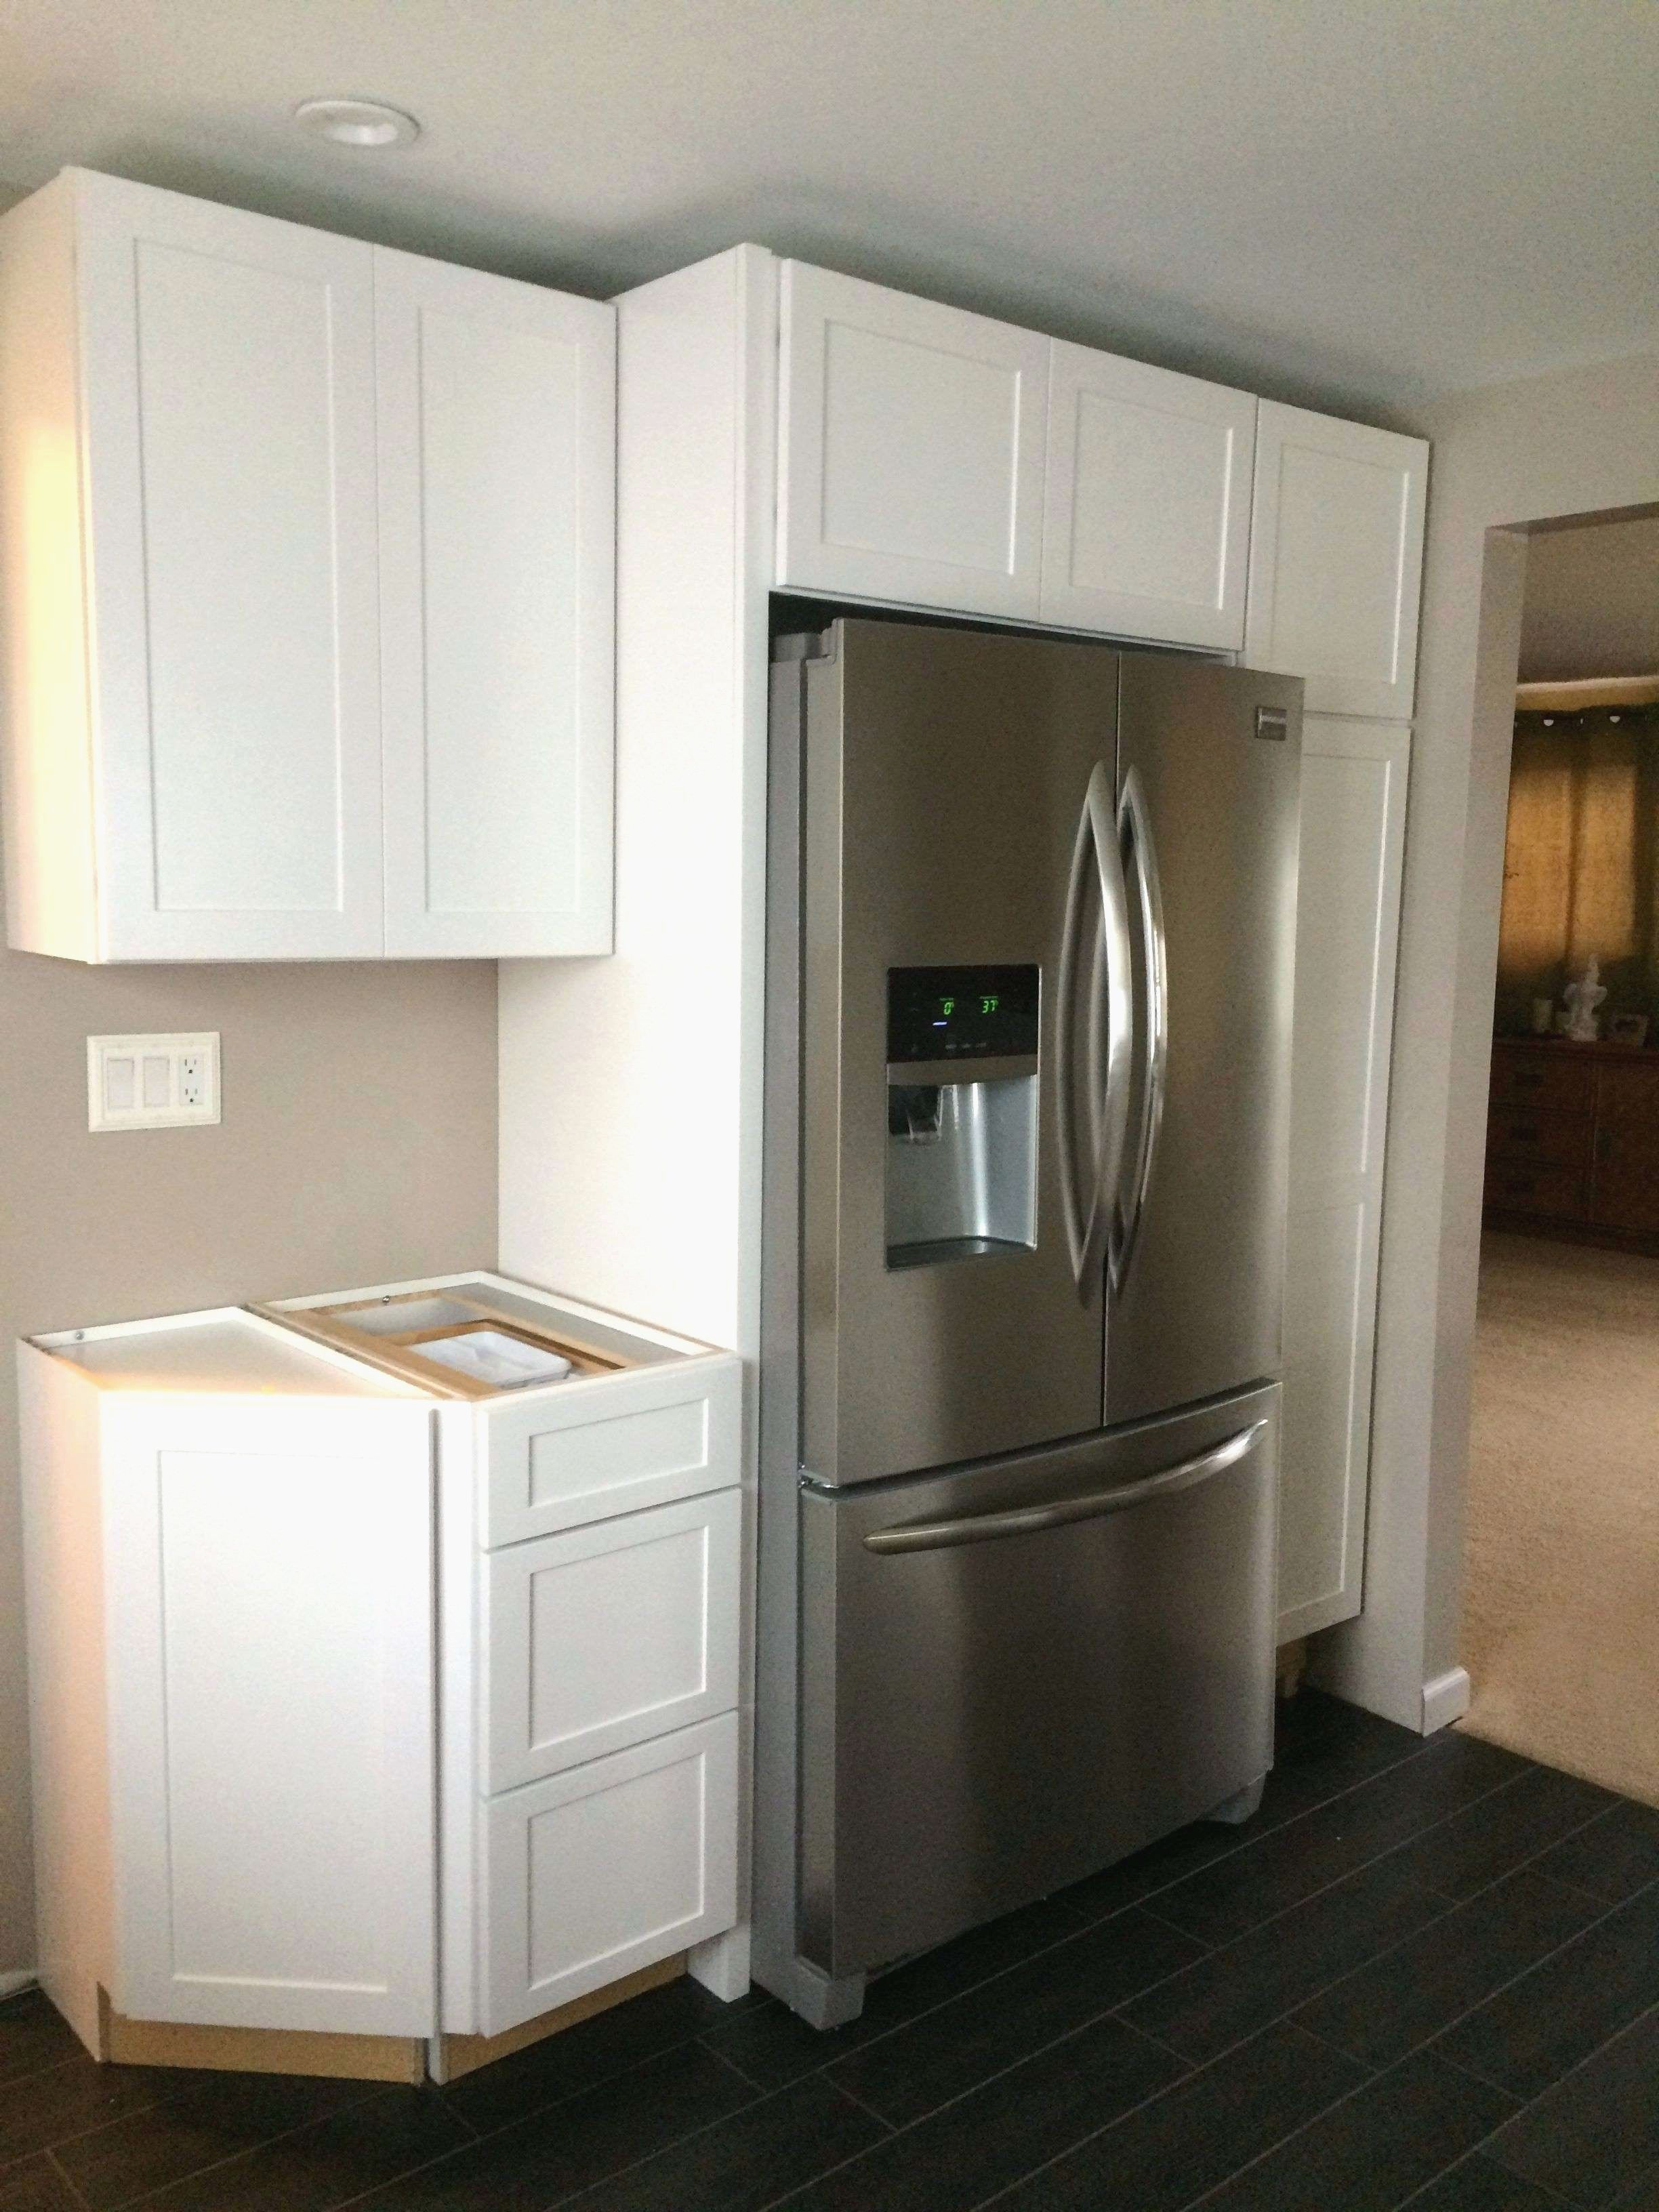 How To Paint Unfinished Kitchen Cabinets Unfinishedkitchencabinets Unfinished Oak Cab Refacing Kitchen Cabinets Unfinished Kitchen Cabinets Home Depot Kitchen